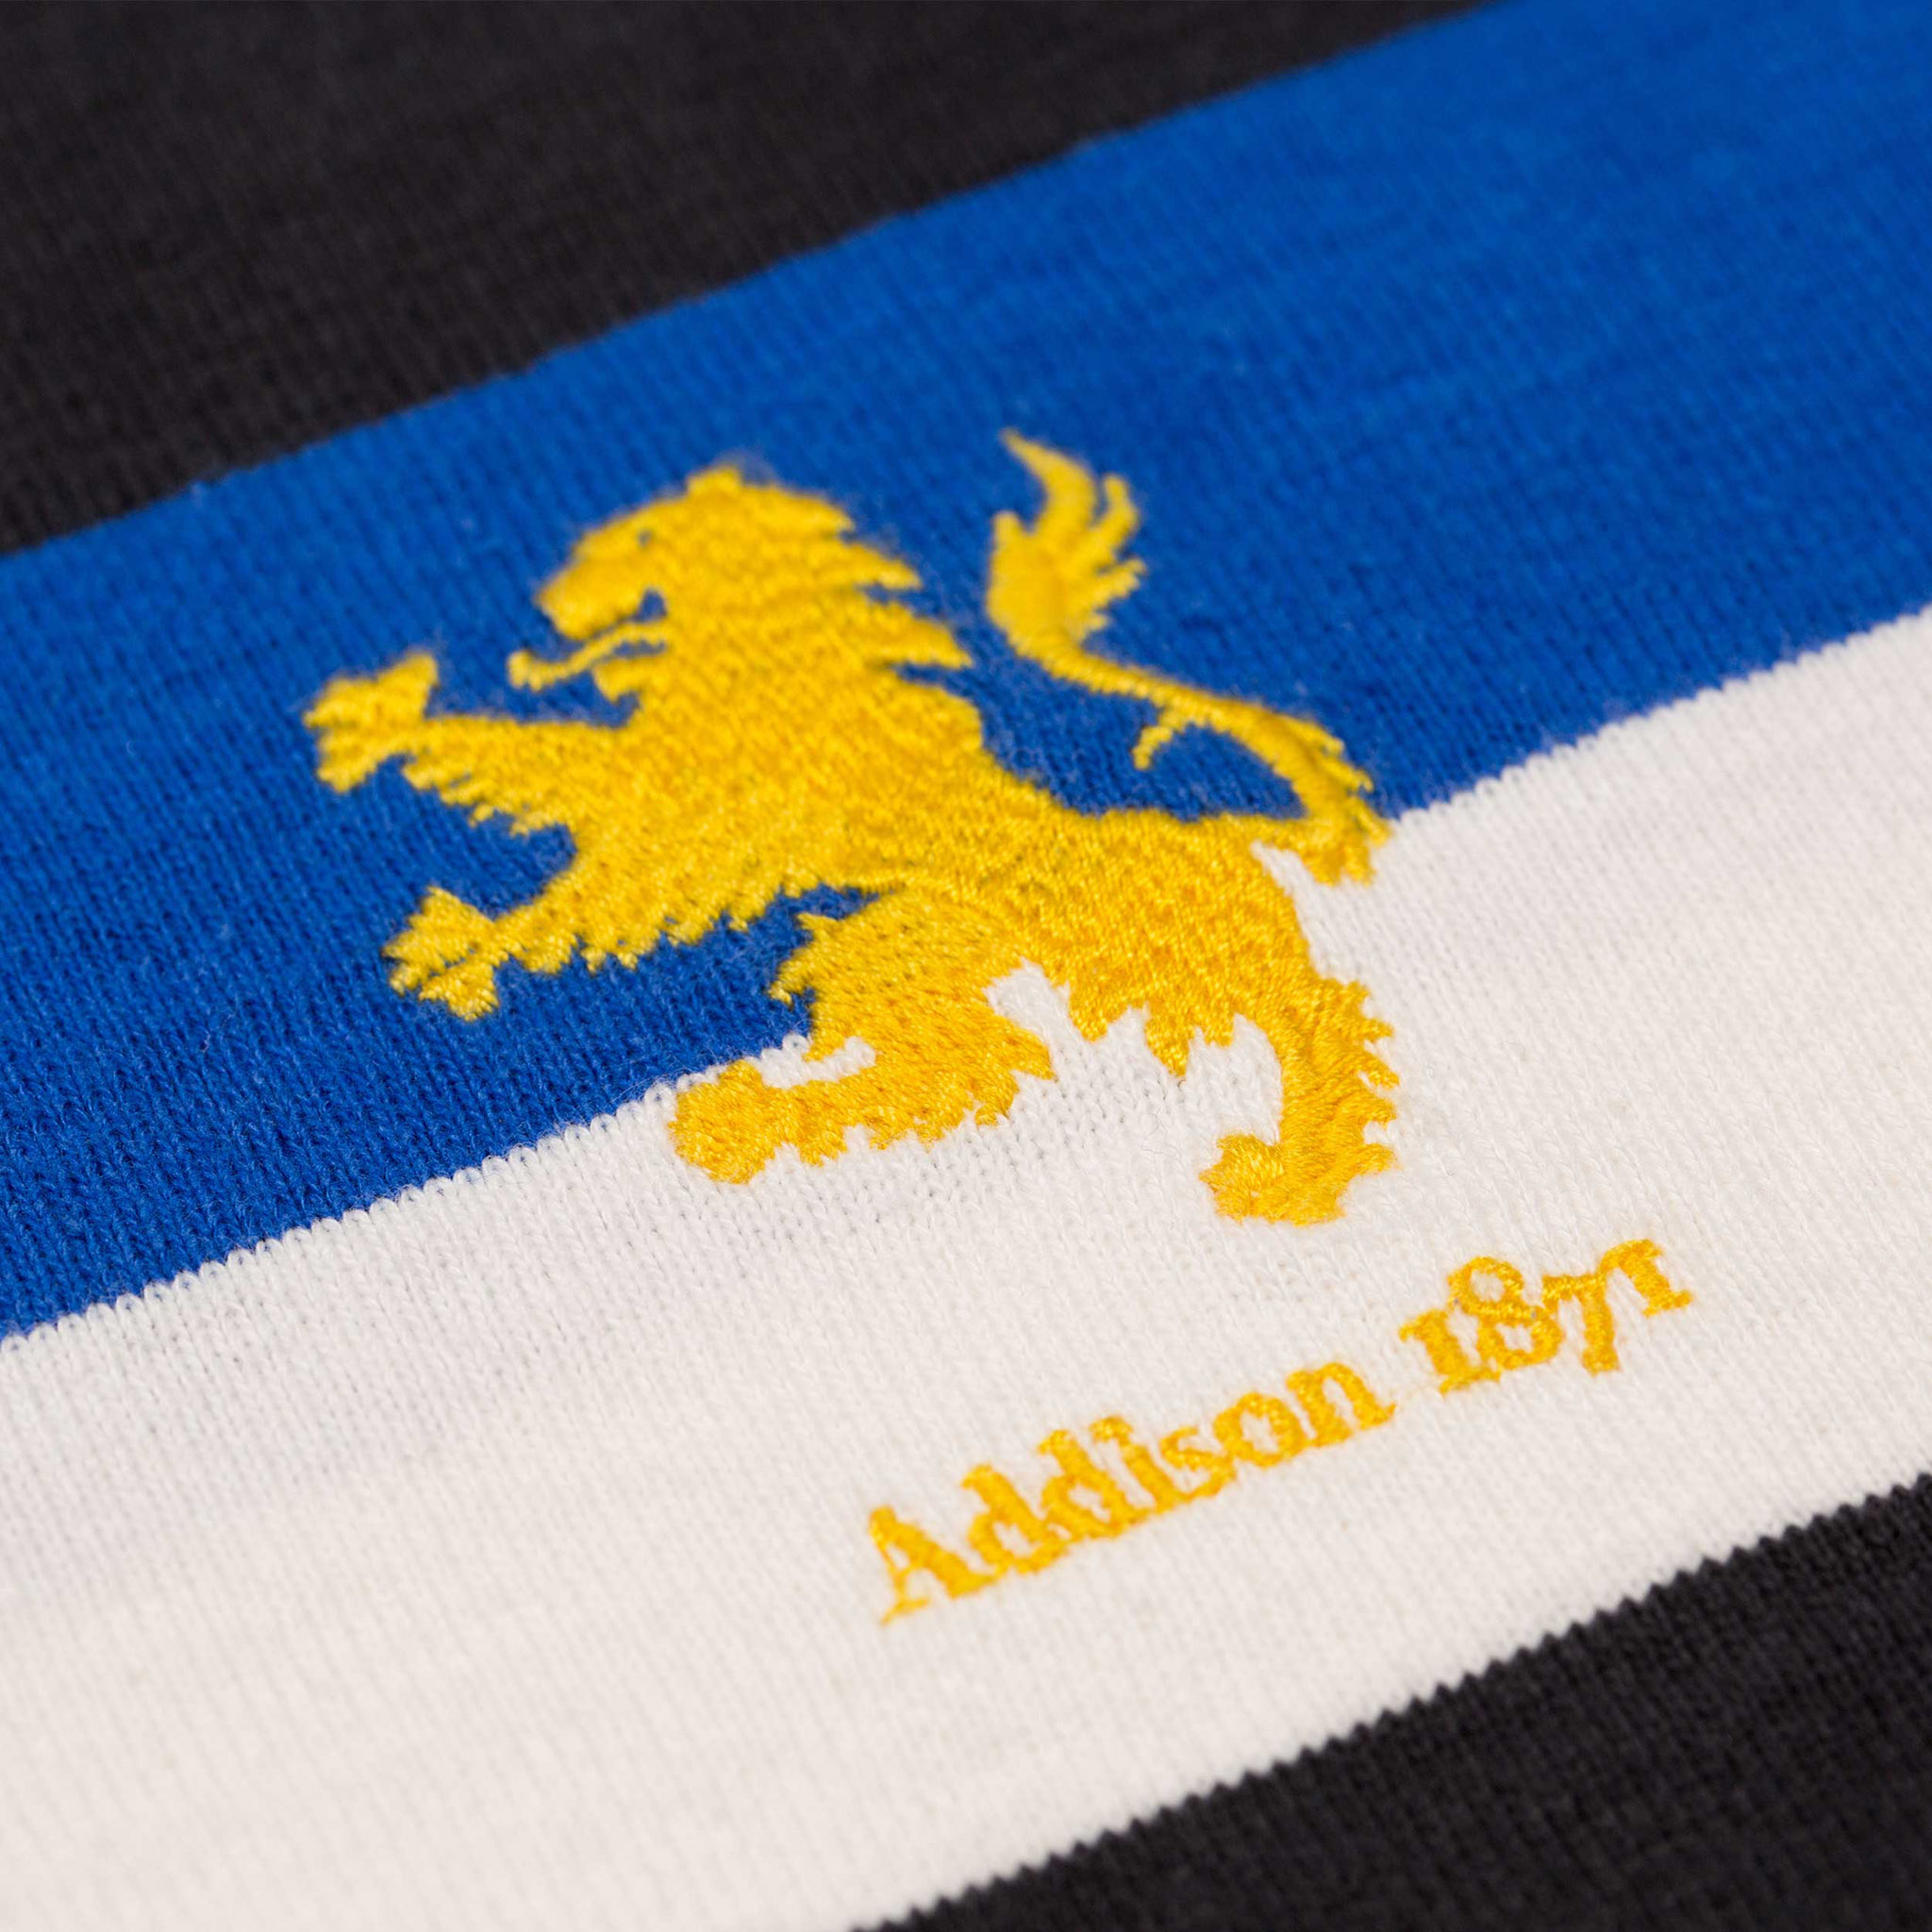 Addison 1871 Rugby Shirt Logo